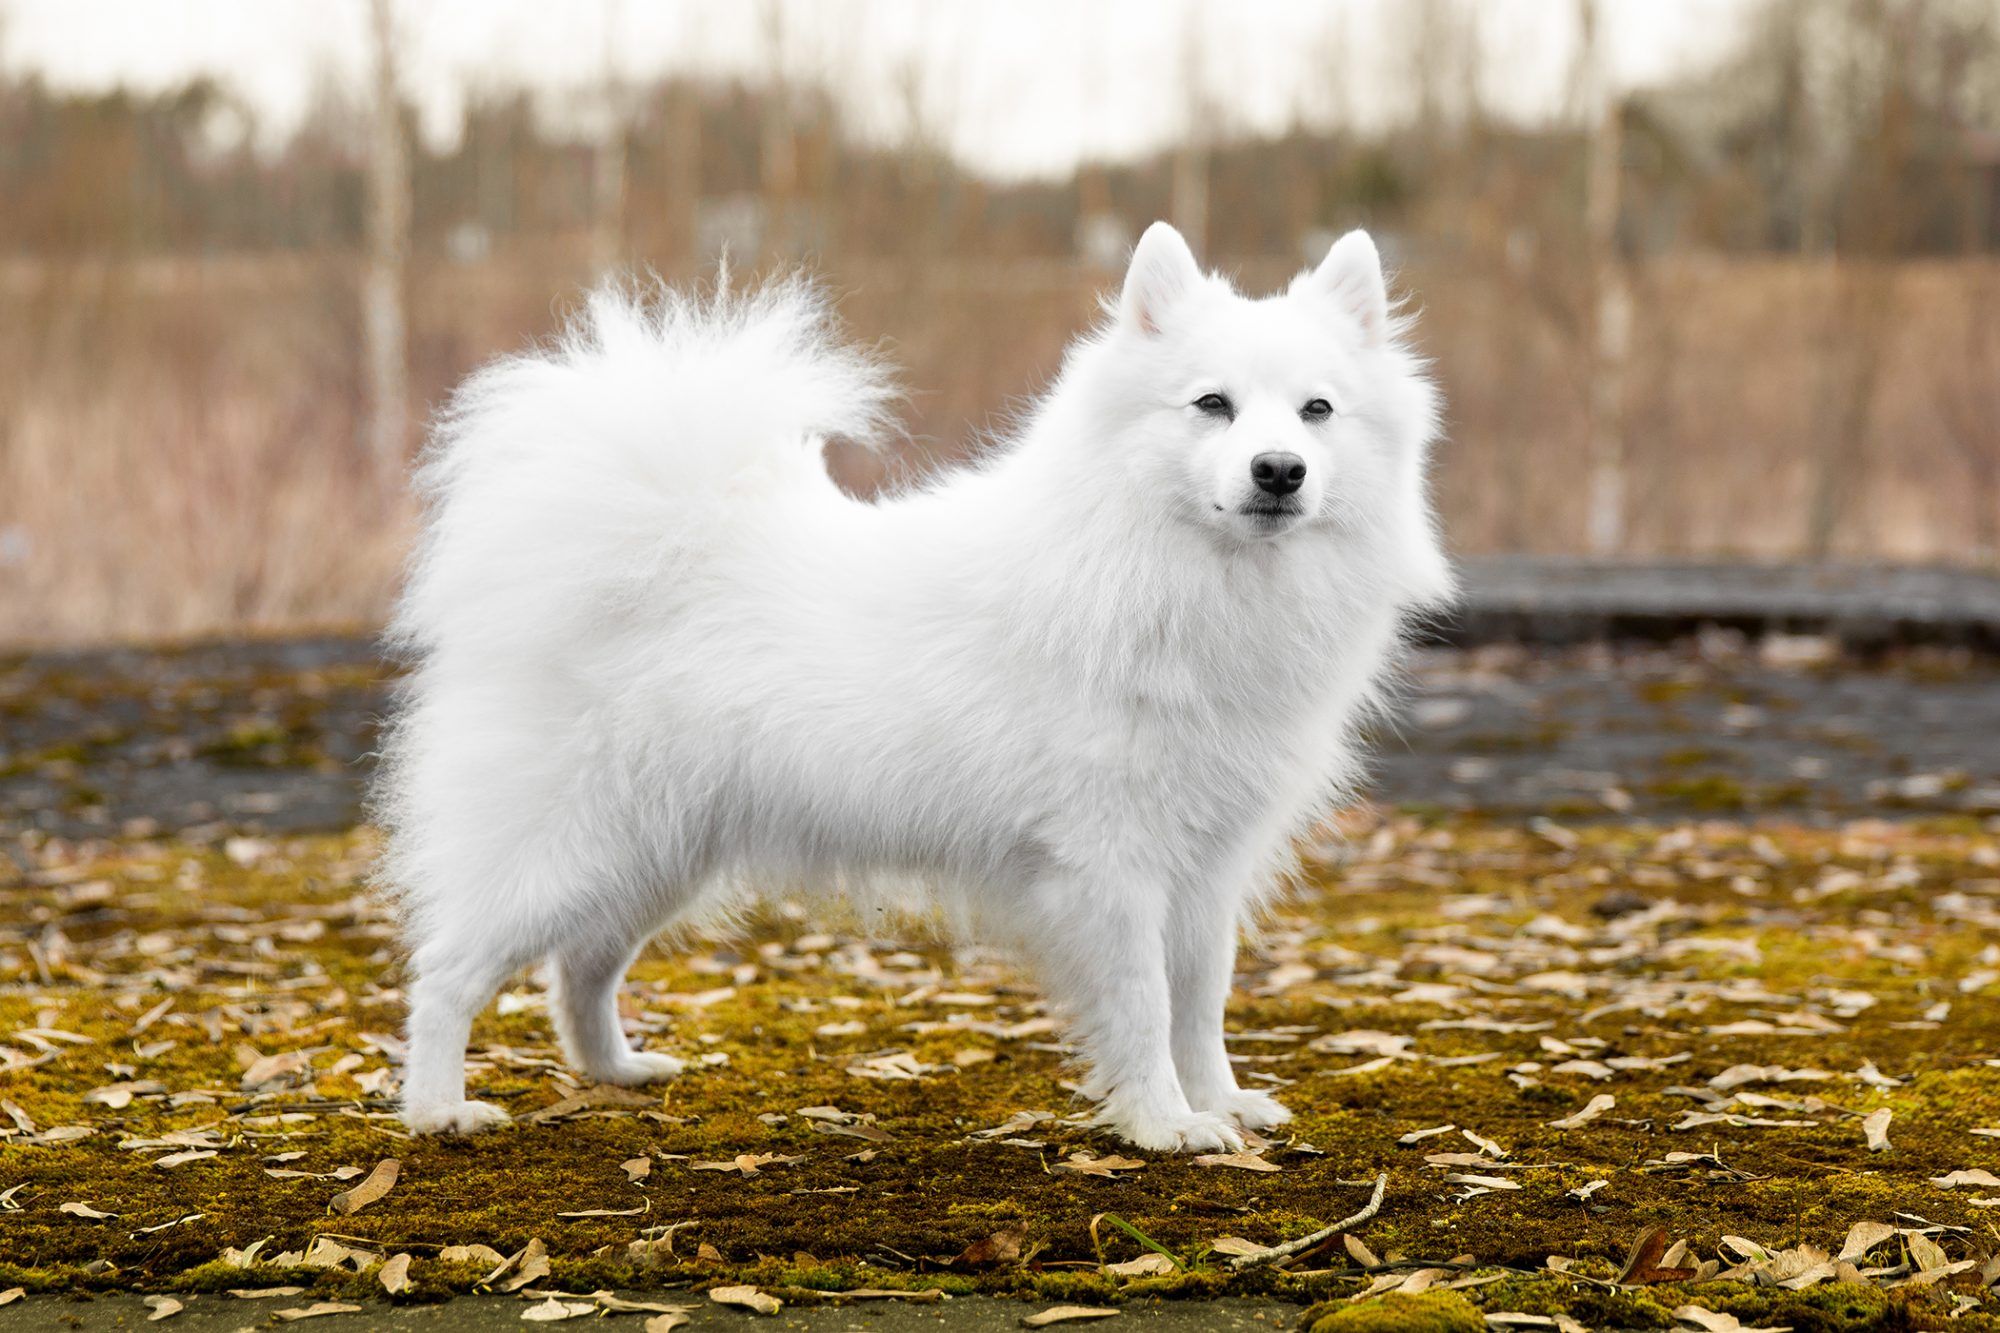 All white Japanese Spitz dog stands on leafy ground